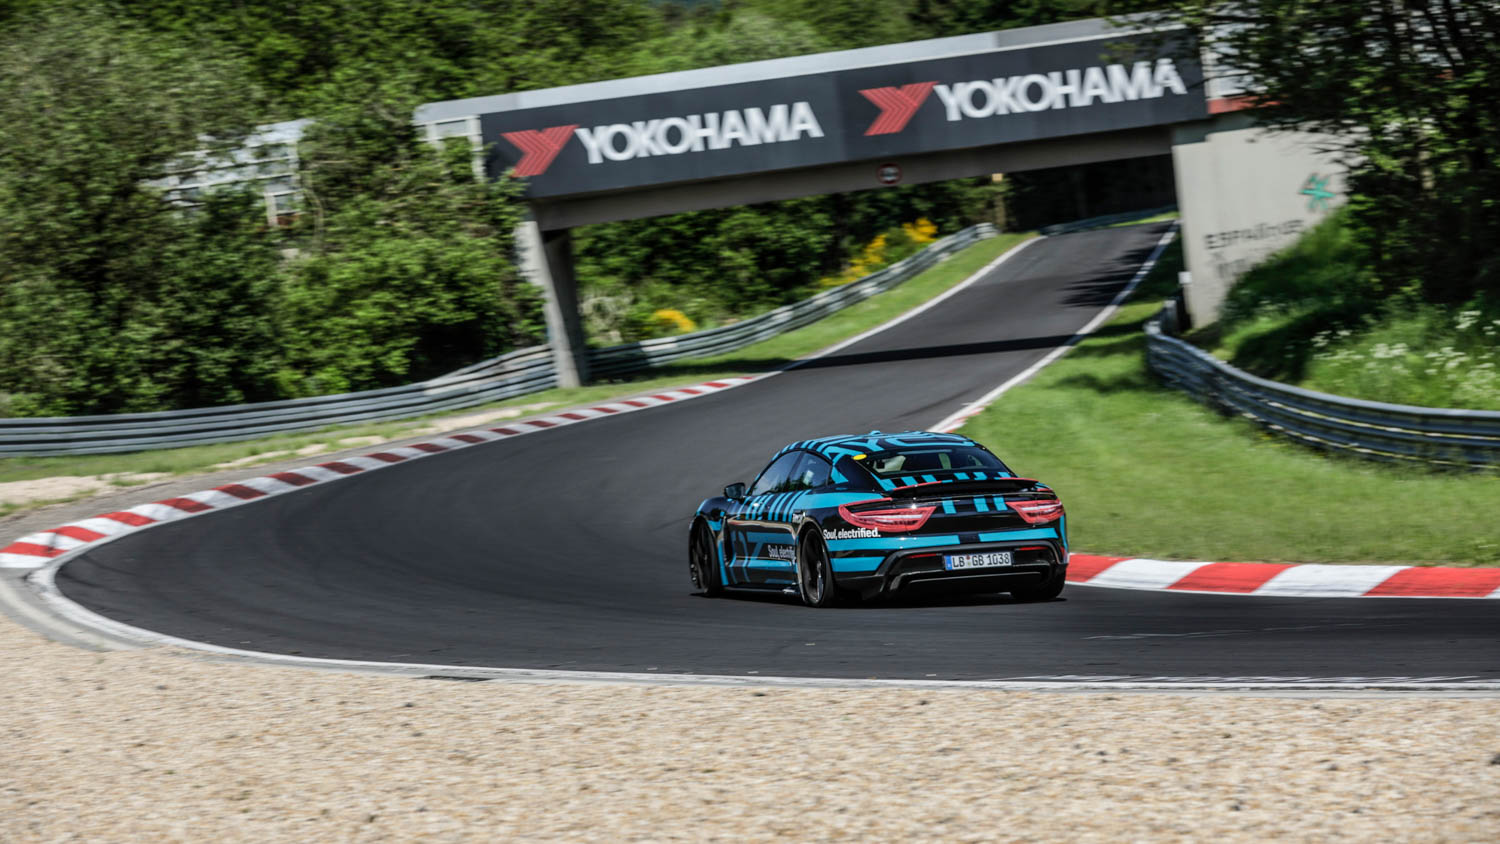 Porsche Taycan sets a record at the Nürburgring-Nordschleife